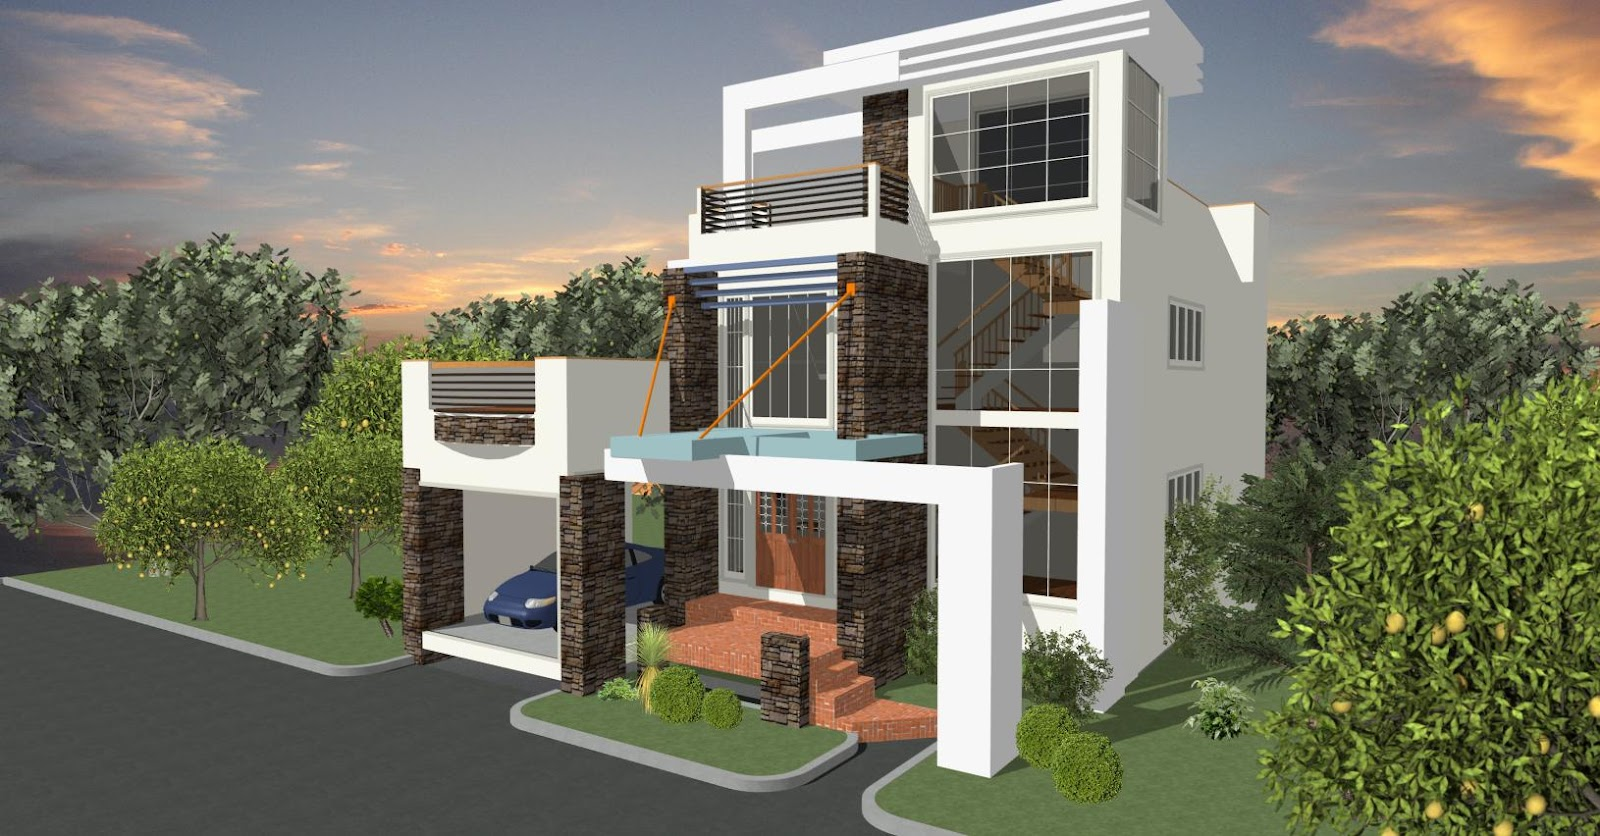 House designs in the philippines in iloilo by erecre group for Model house design 2016